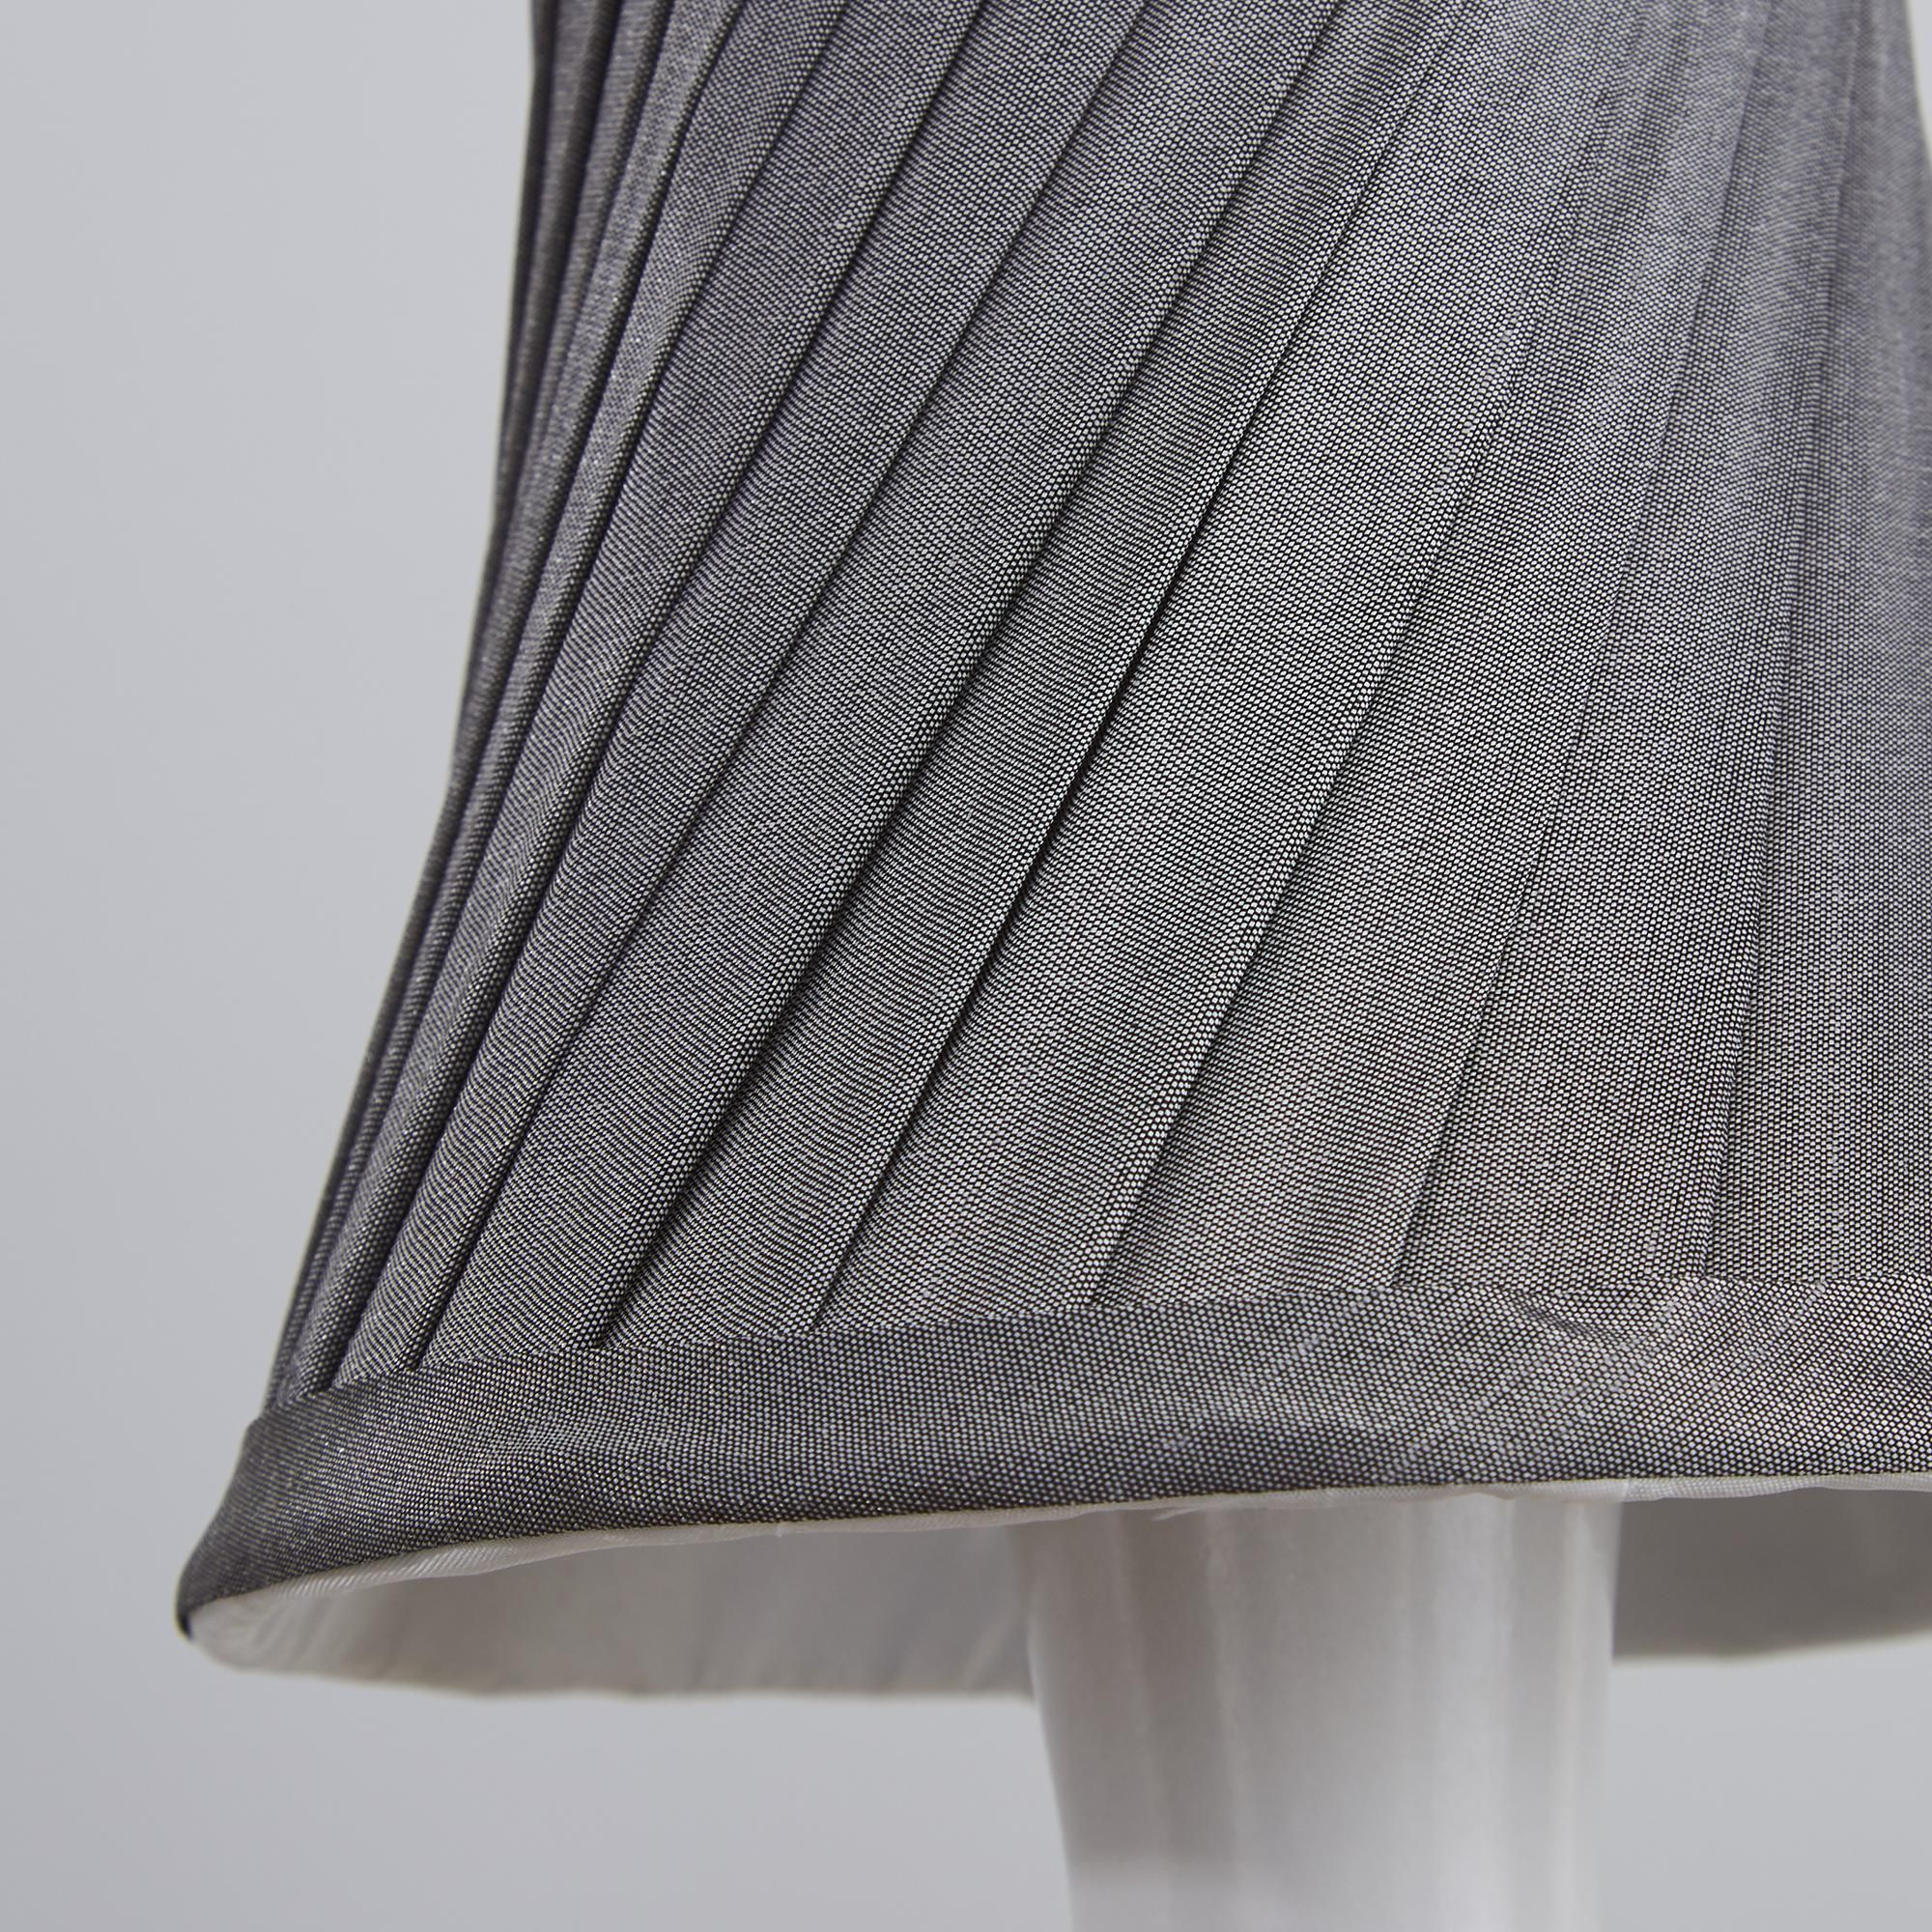 12cm fashion gray silver color Chandelier lace Lamp Shades